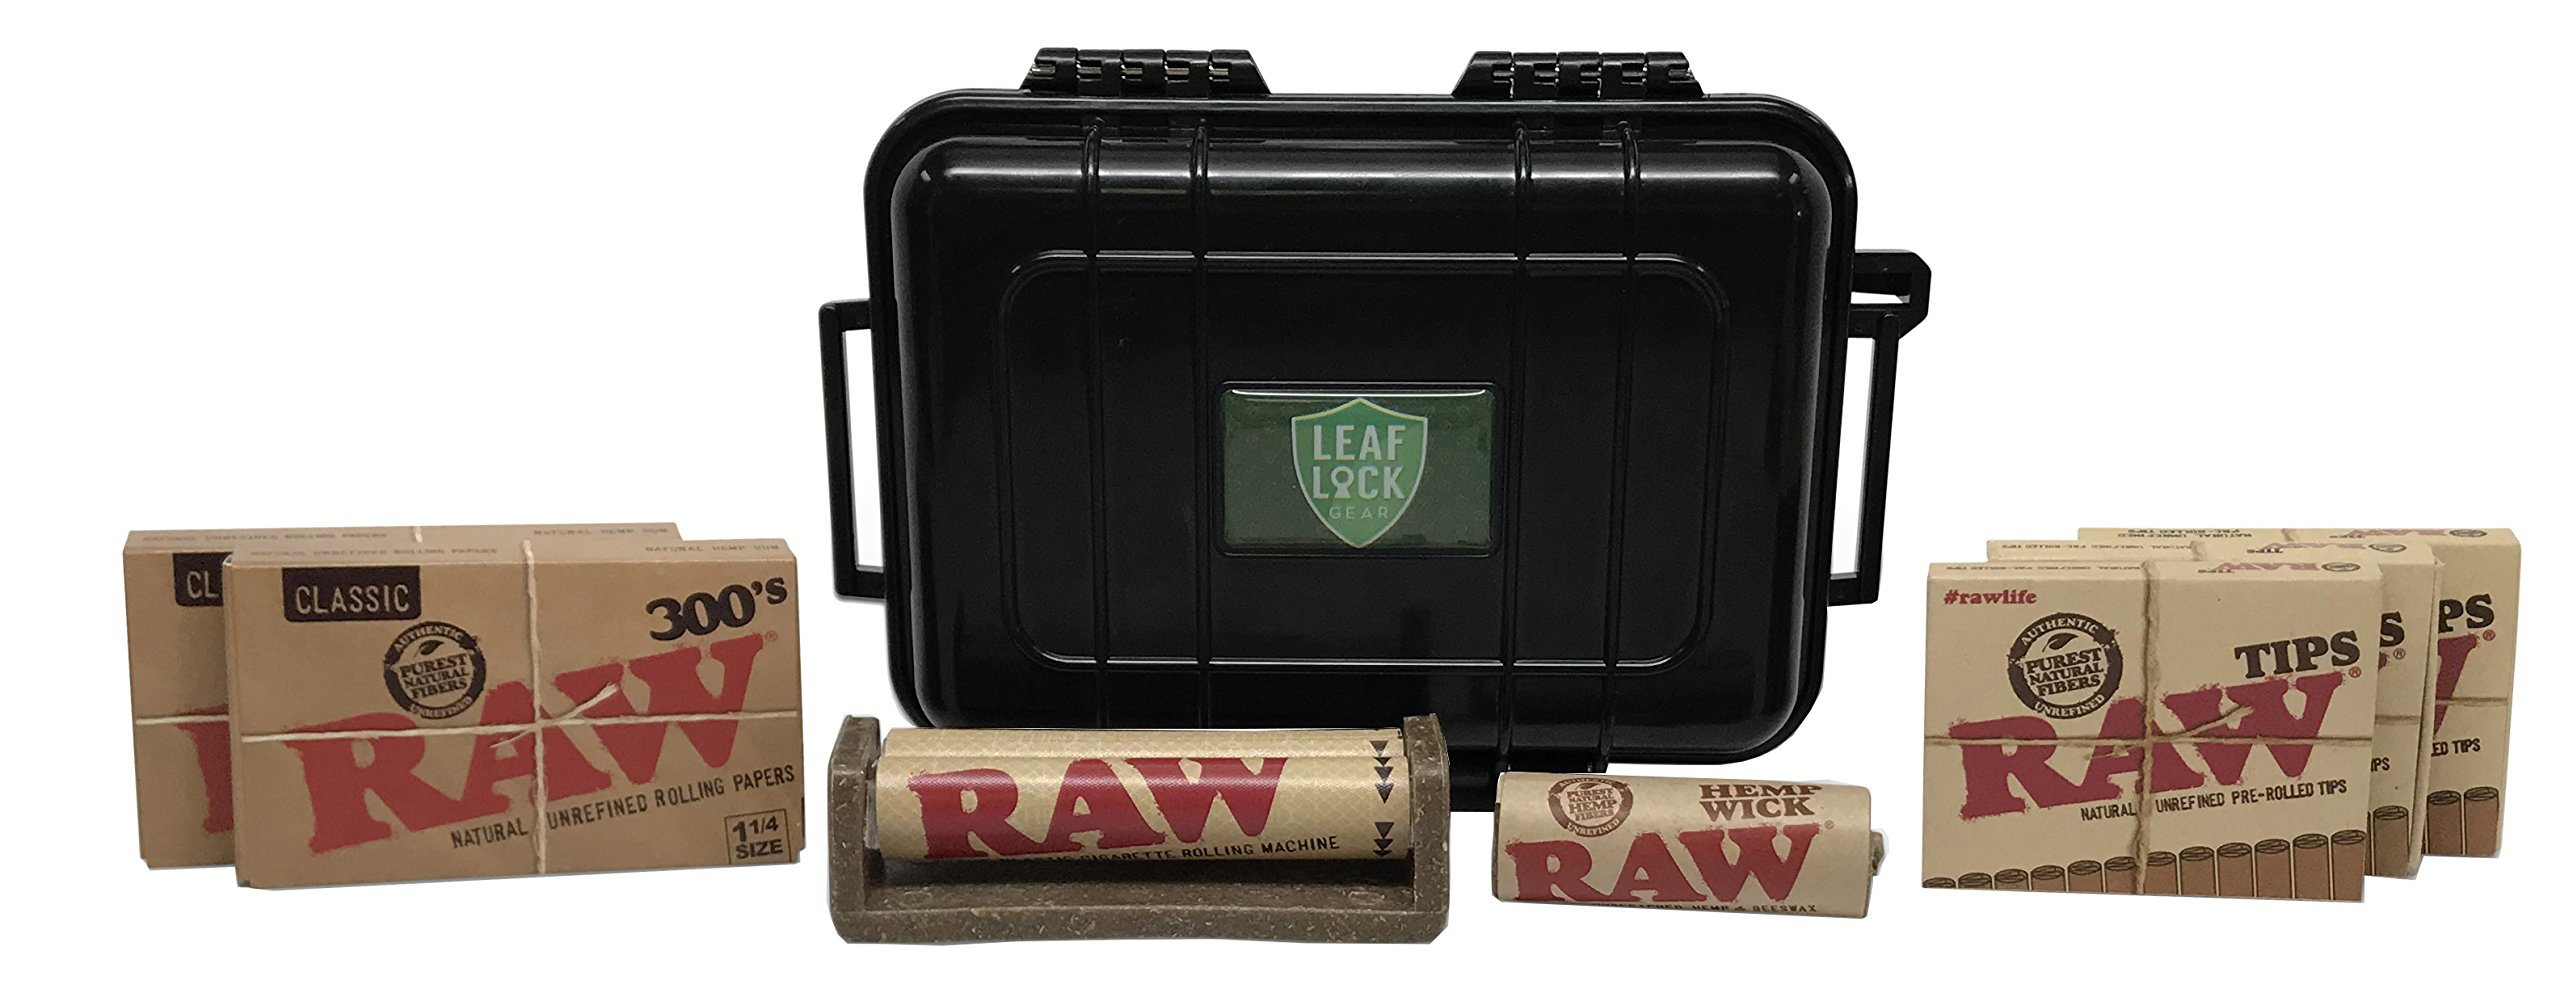 RAW 300 Rolling Papers(2 Packs), Pre-Rolled Tips(3 Packs), 79mm Roller, Hemp Wick - 20 Feet, with Leaf Lock Gear Travel Case - 8 Item Bundle